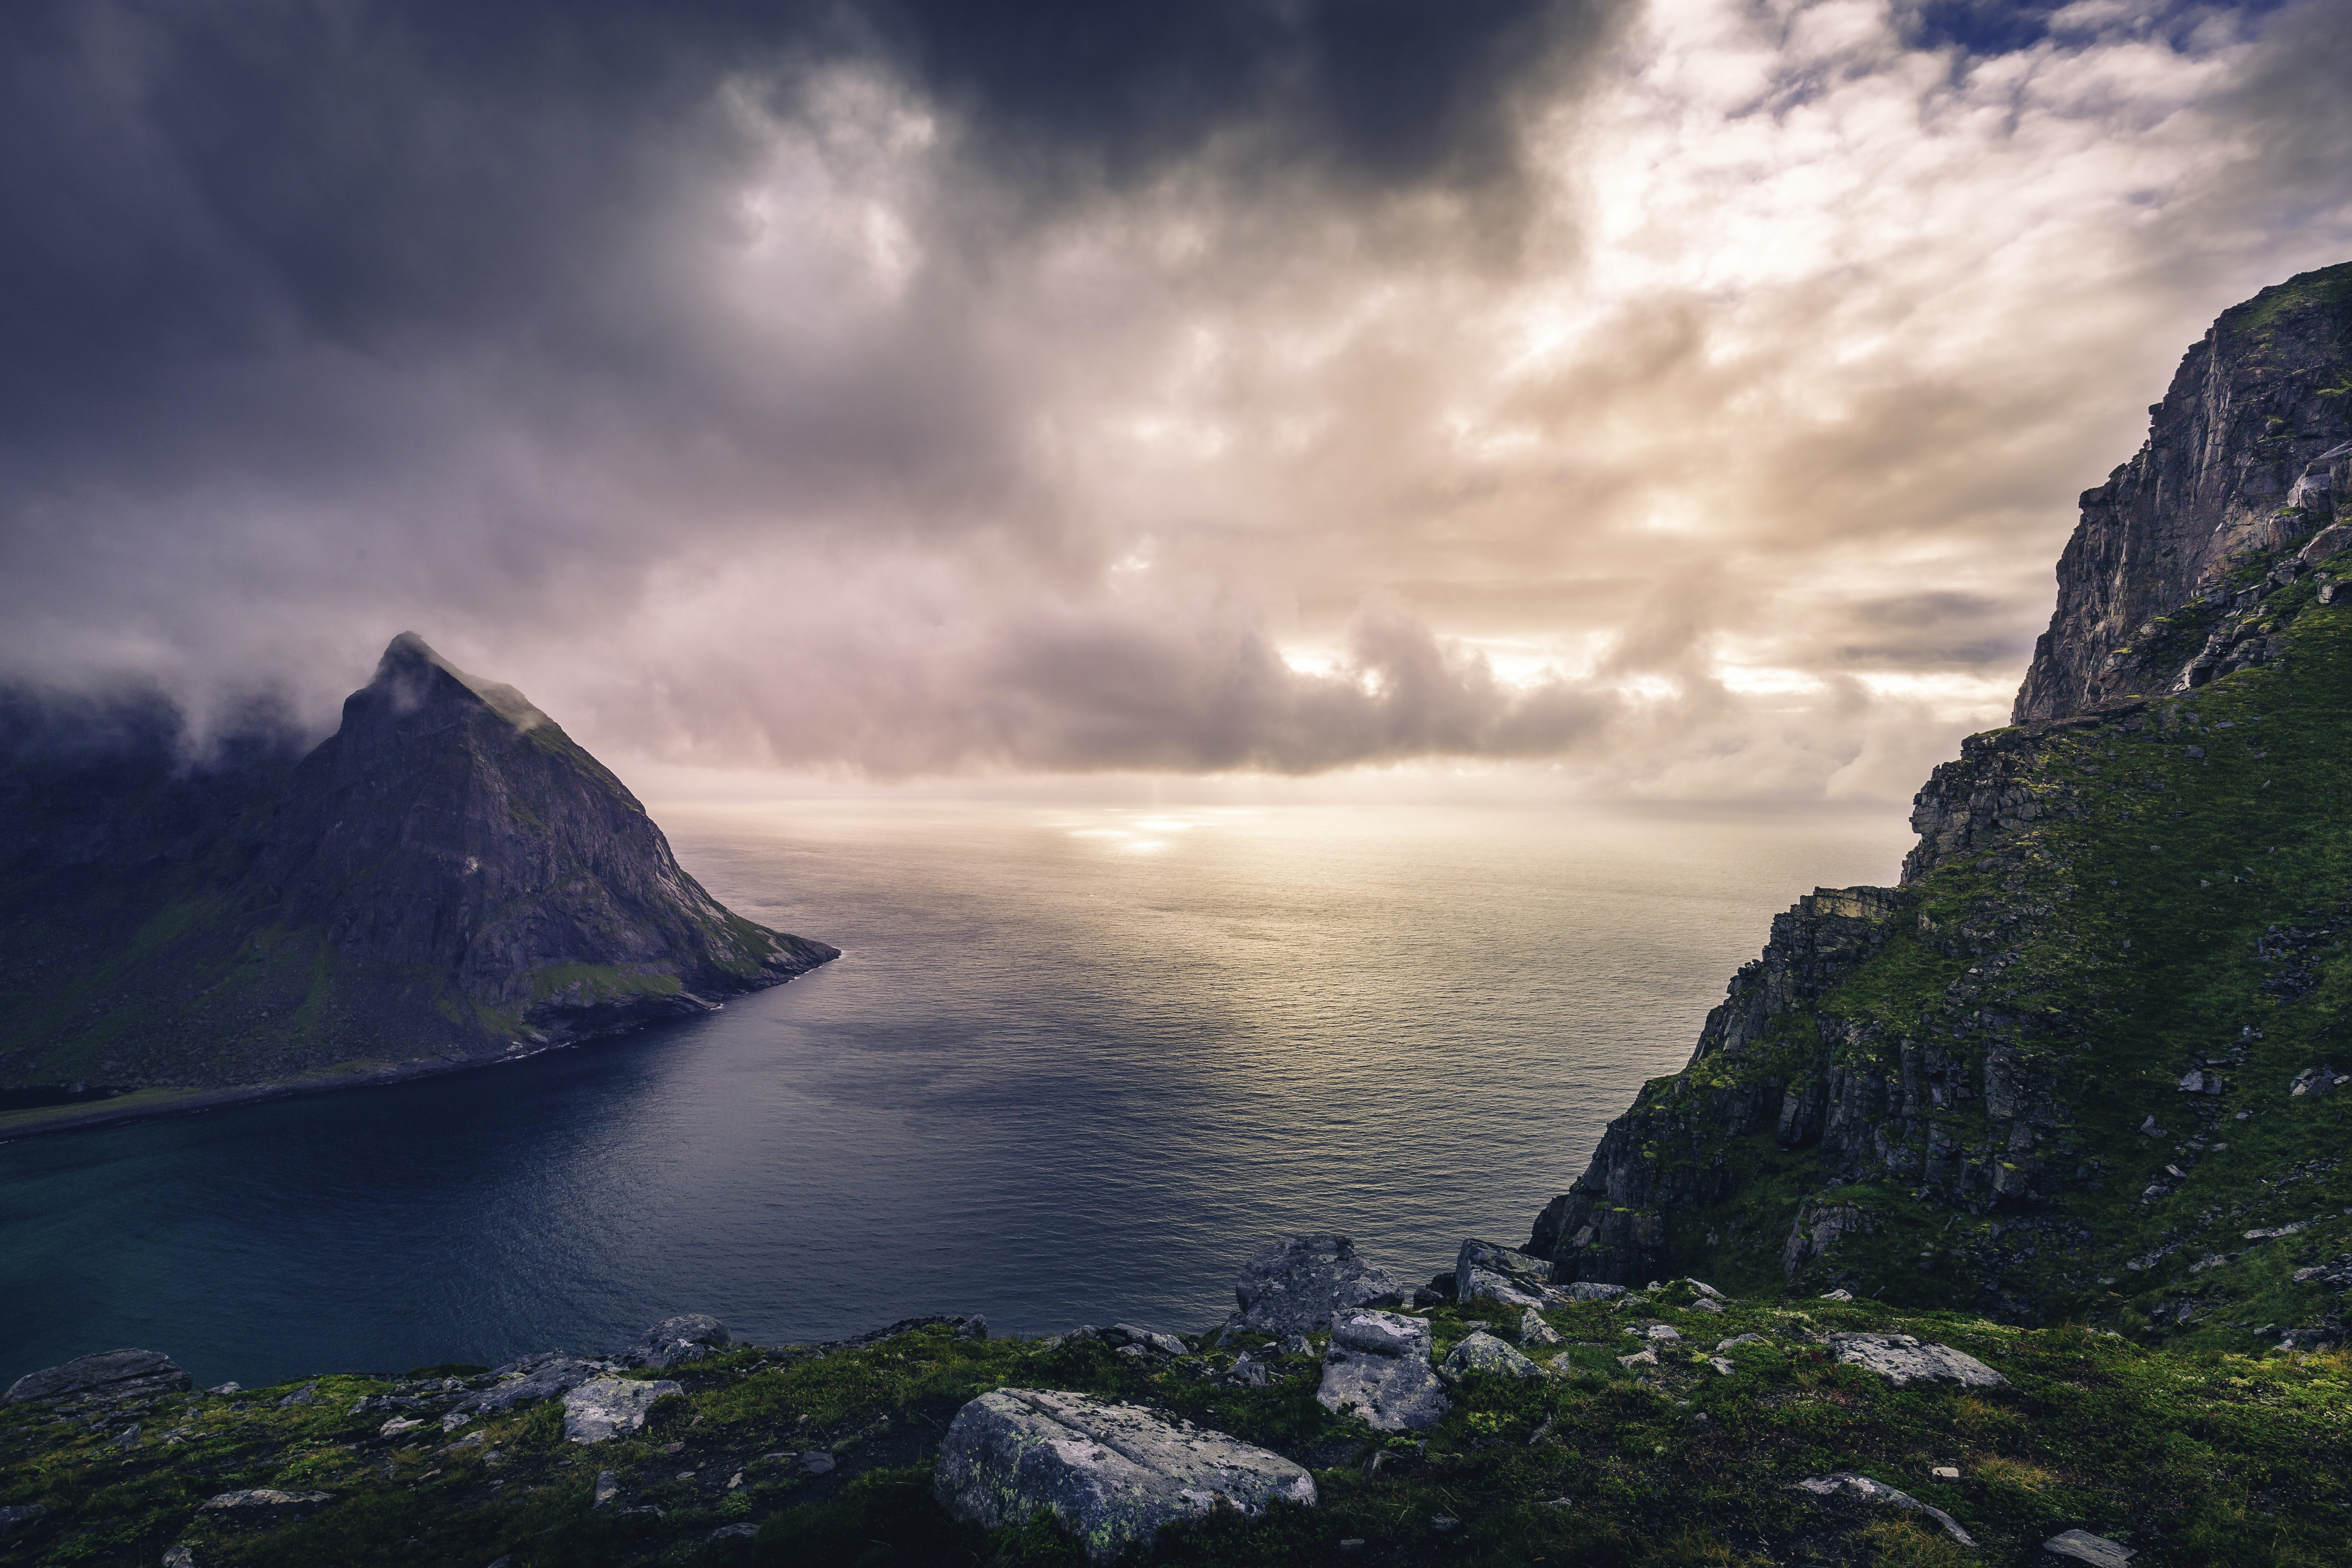 landscape photography of ocean near mountains